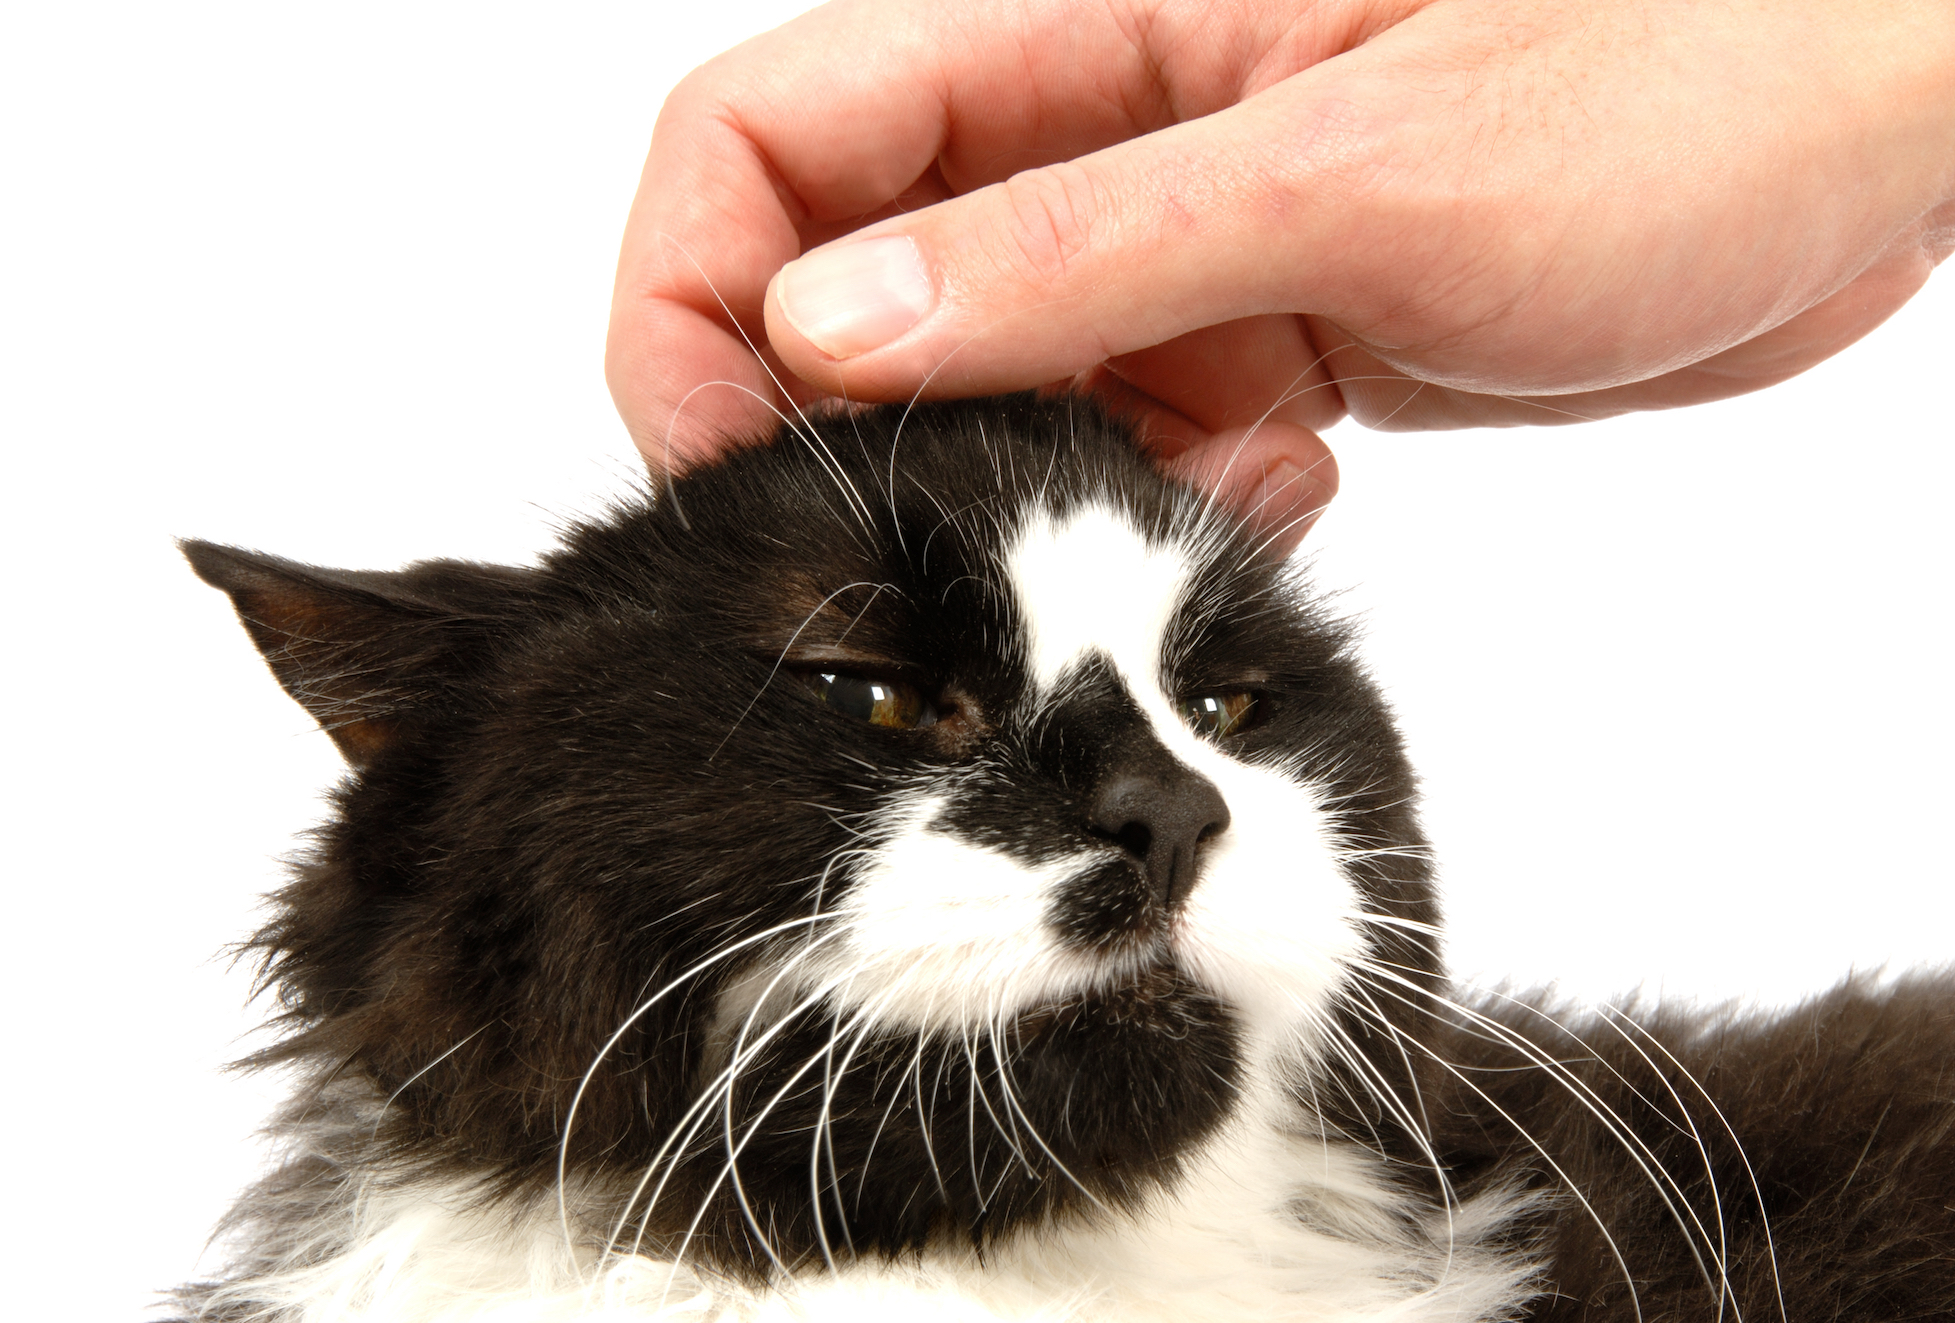 New research has revealed that cats love getting their head scratched because it reminds them of being groomed by their mother as a kitten.